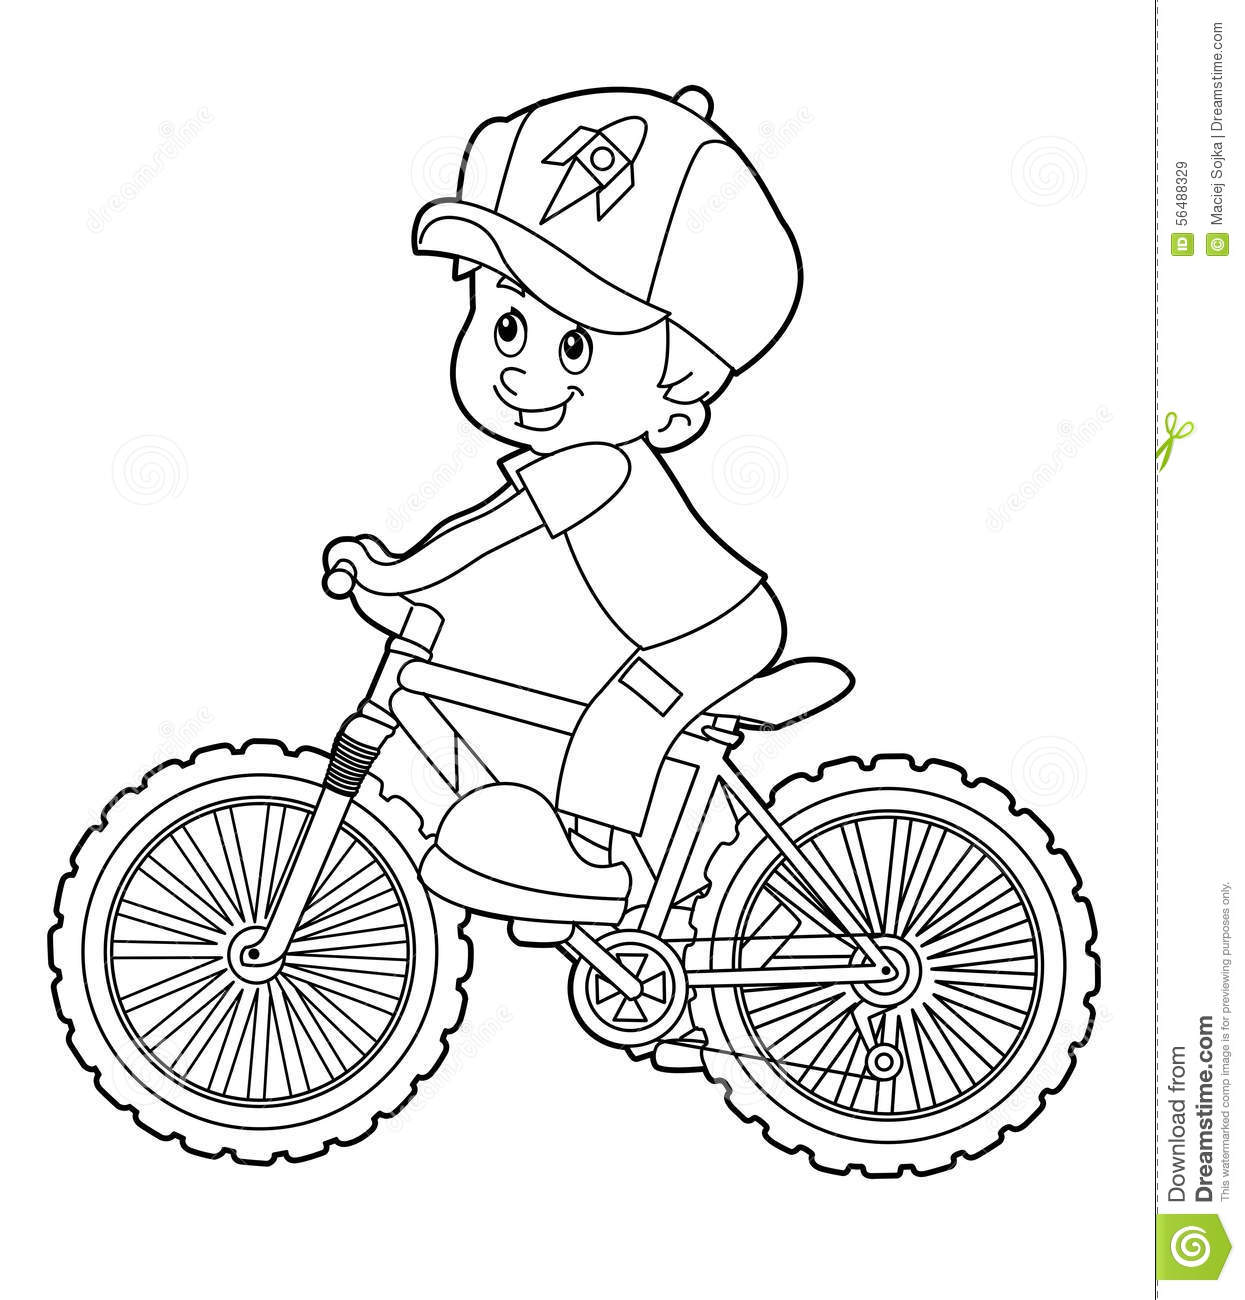 Cartoon kid riding bicycle coloring page royalty free for Bike riding coloring pages